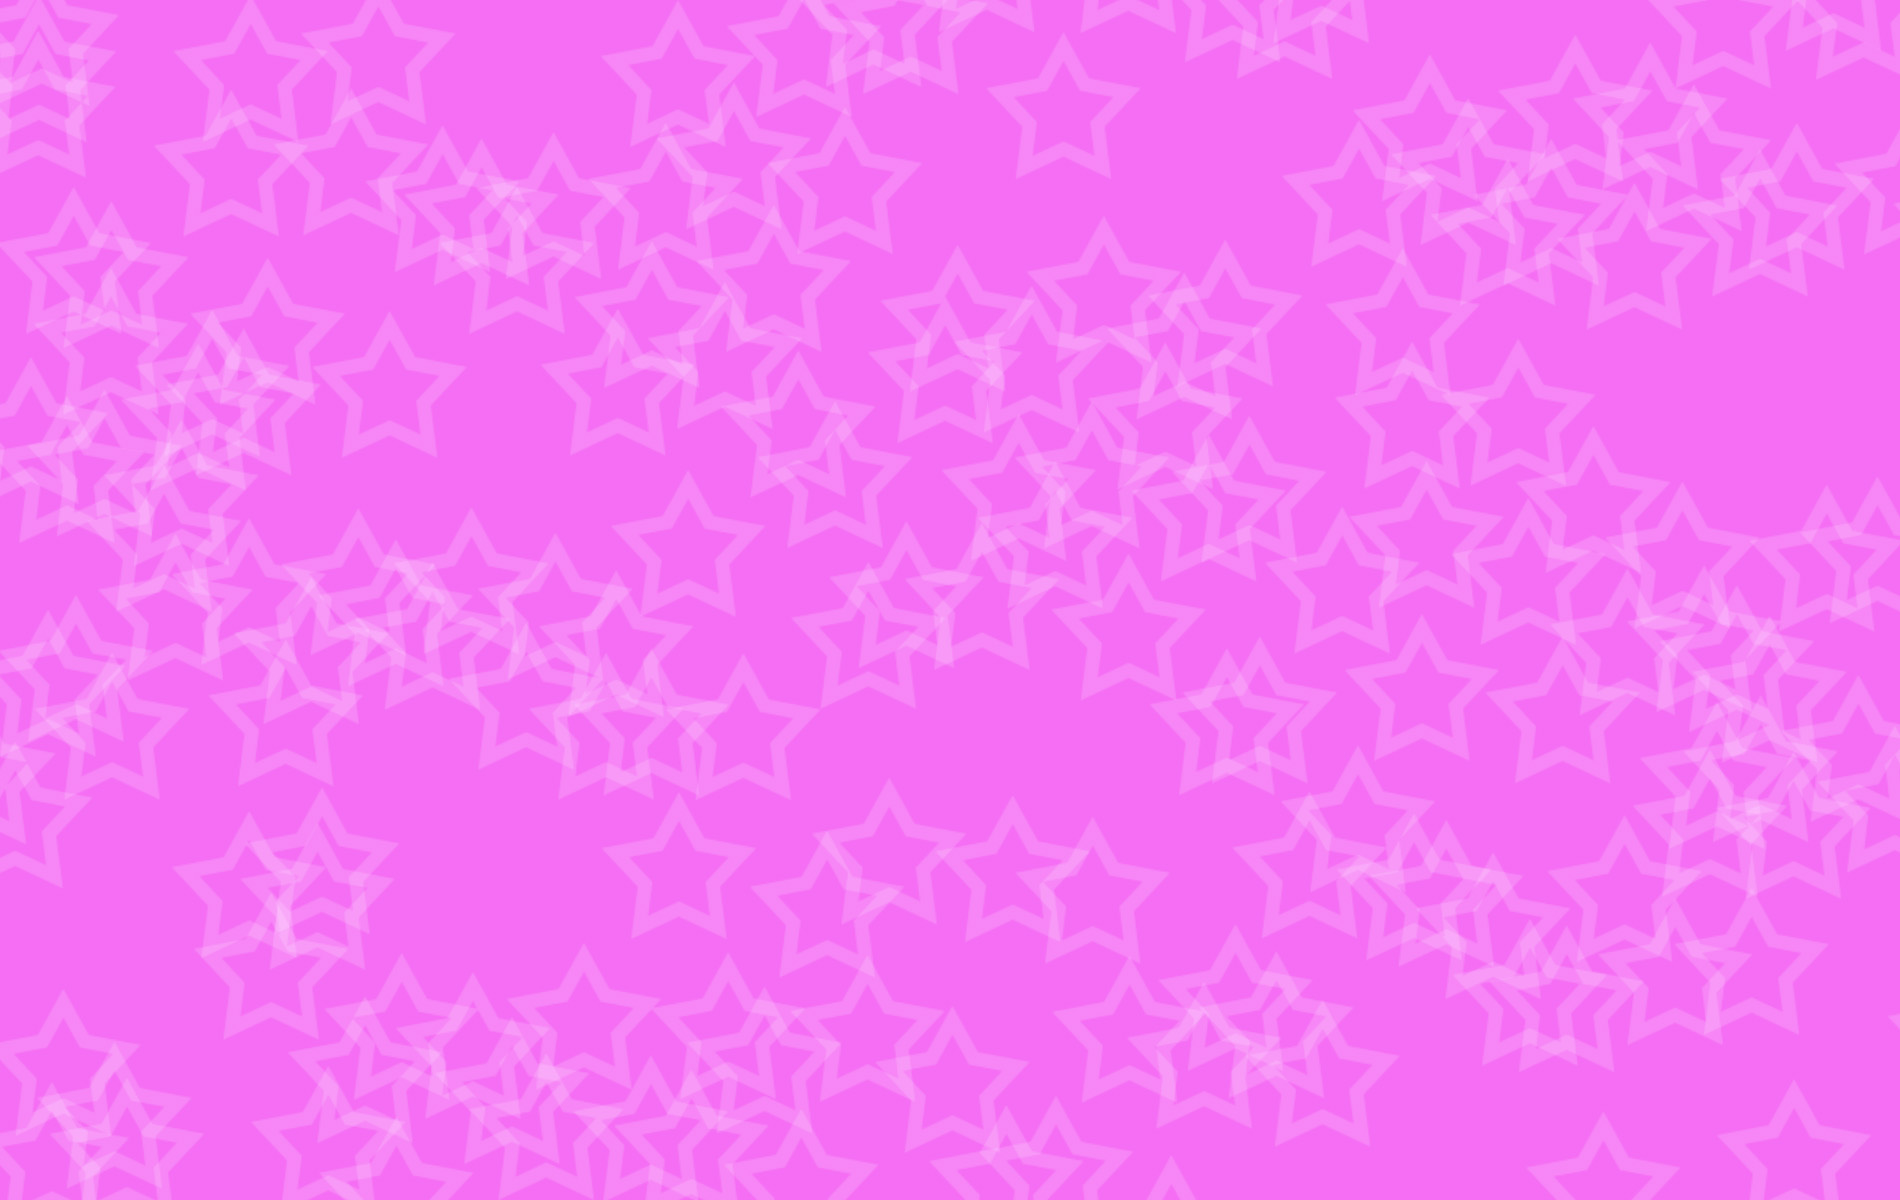 Abstract Pink Stars   high quality background pictures 1900x1200